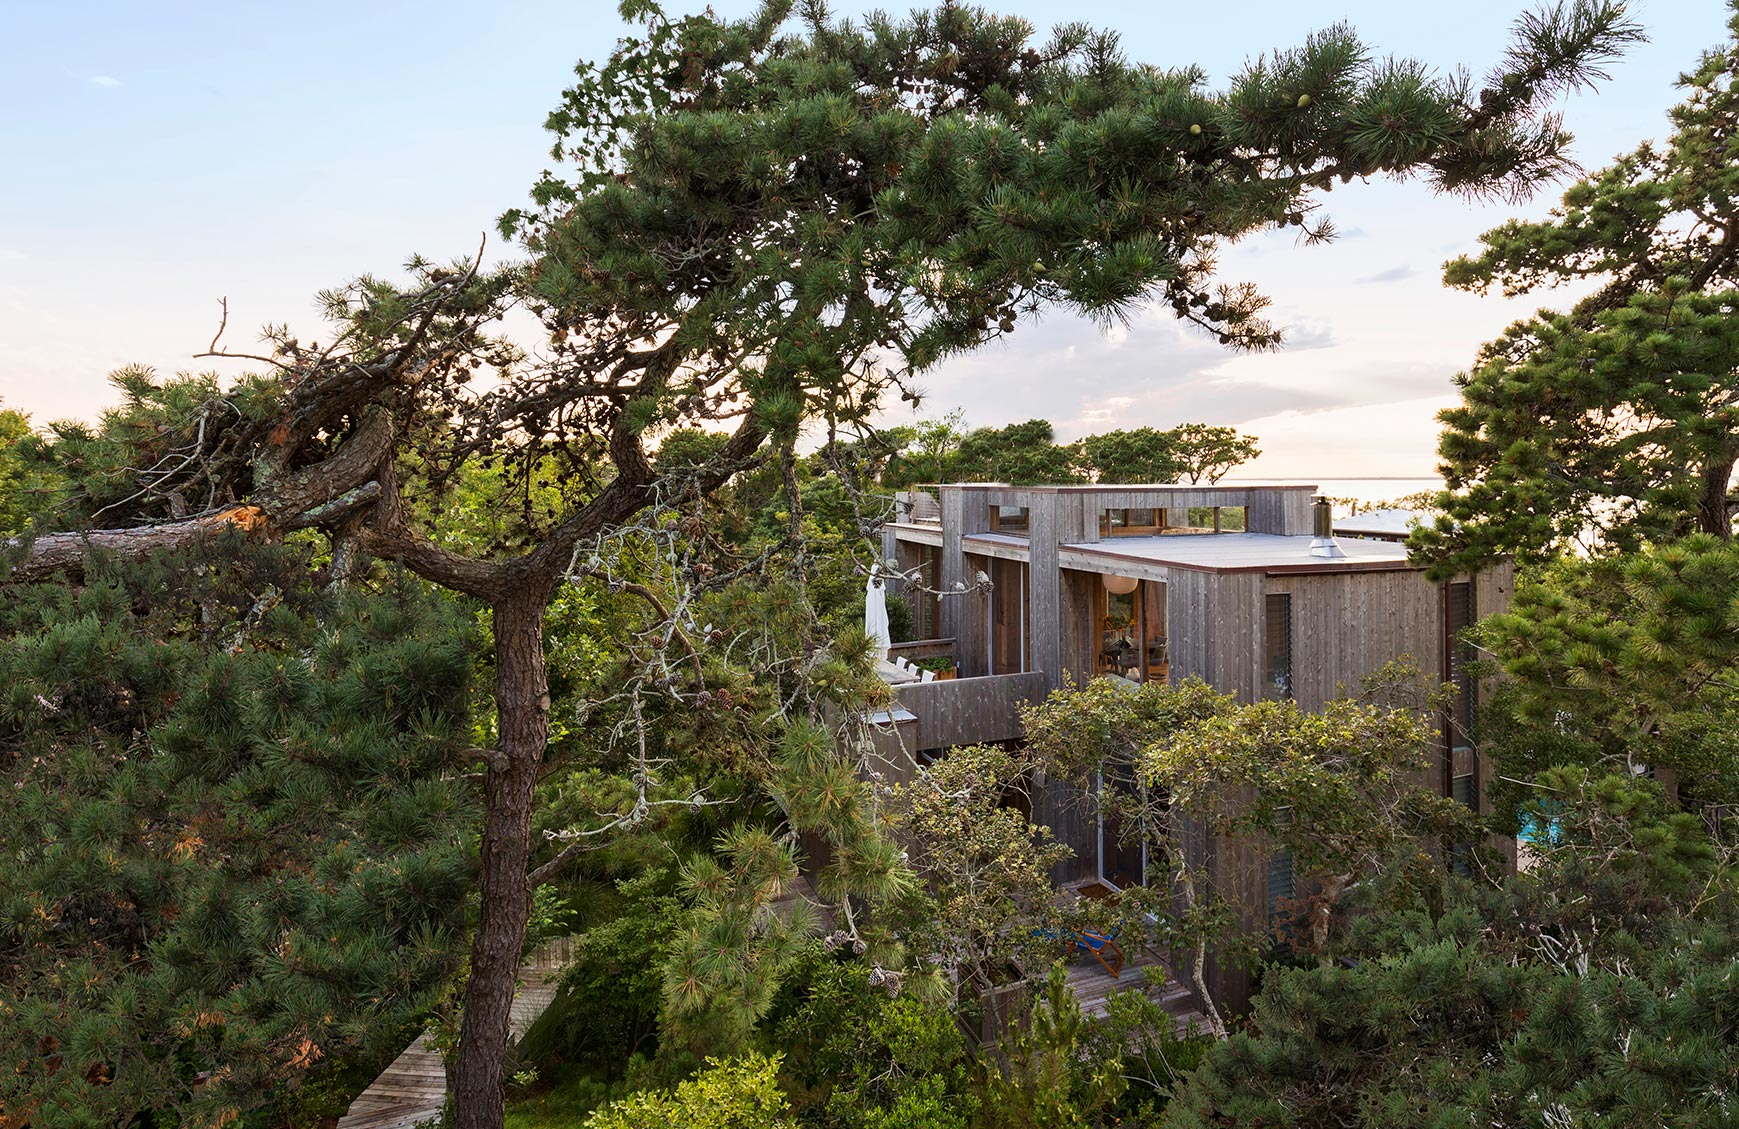 Fire Island House, Long Island, NY - A restoration and renovation of a 1965 house by modern architect Horace Gifford.